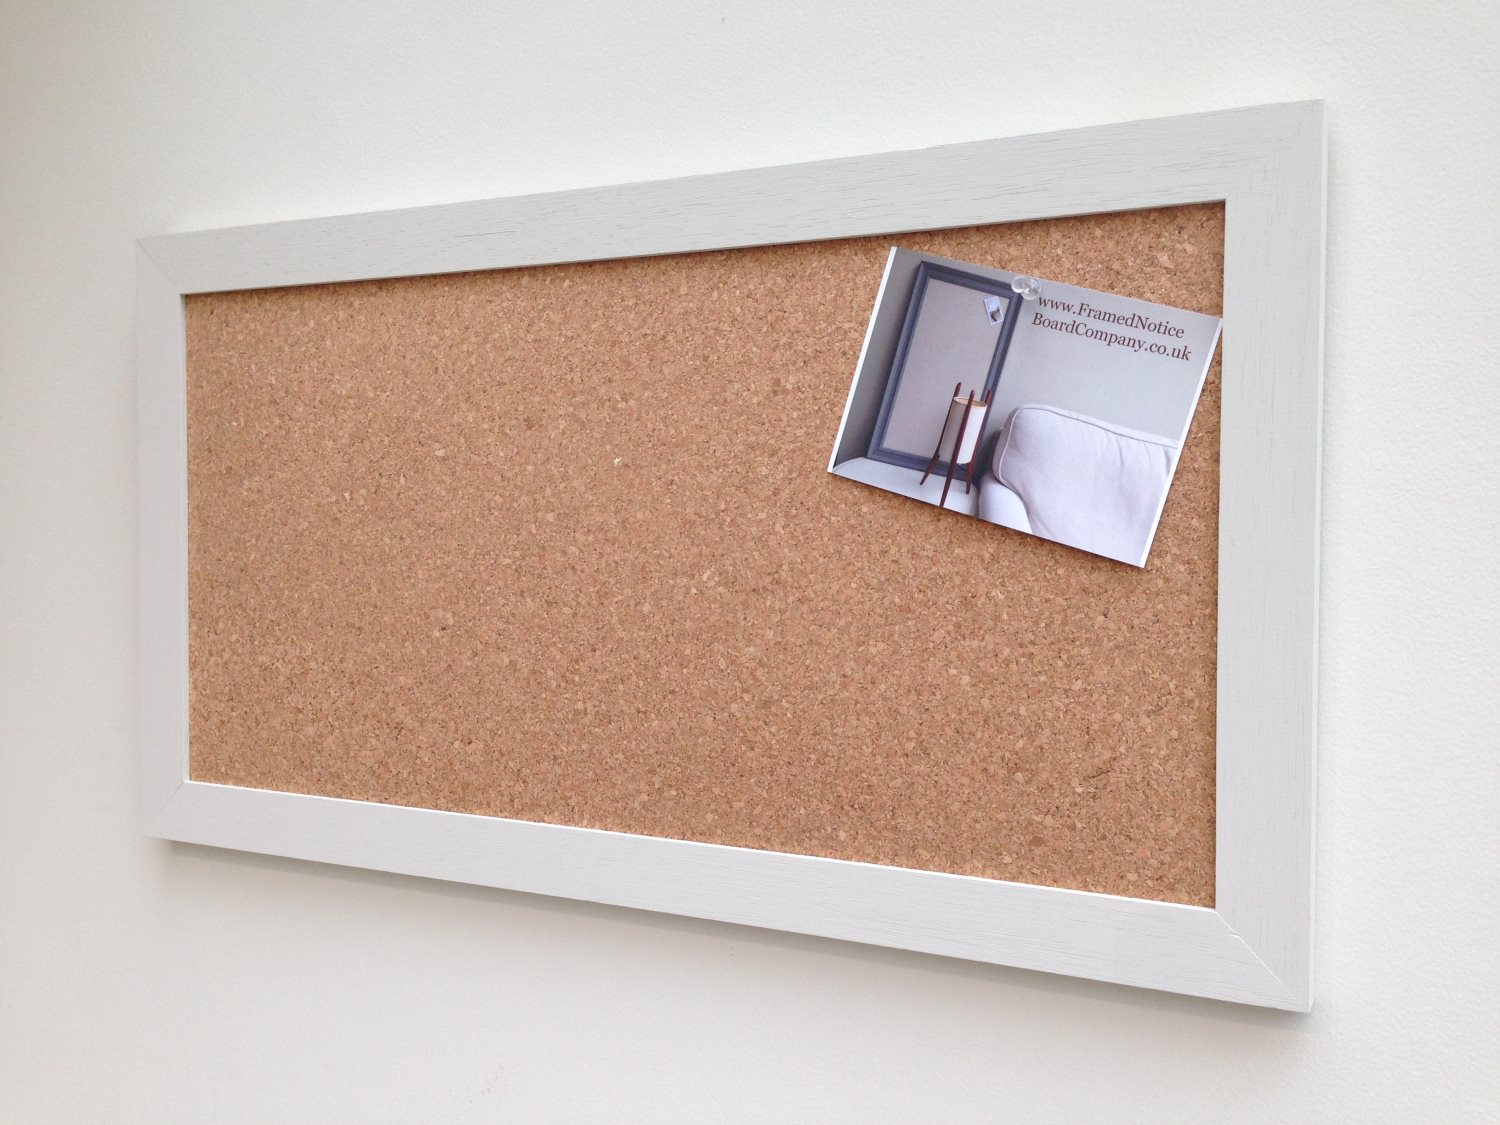 Large Pin Board A Cork Notice Board With Frame Painted In